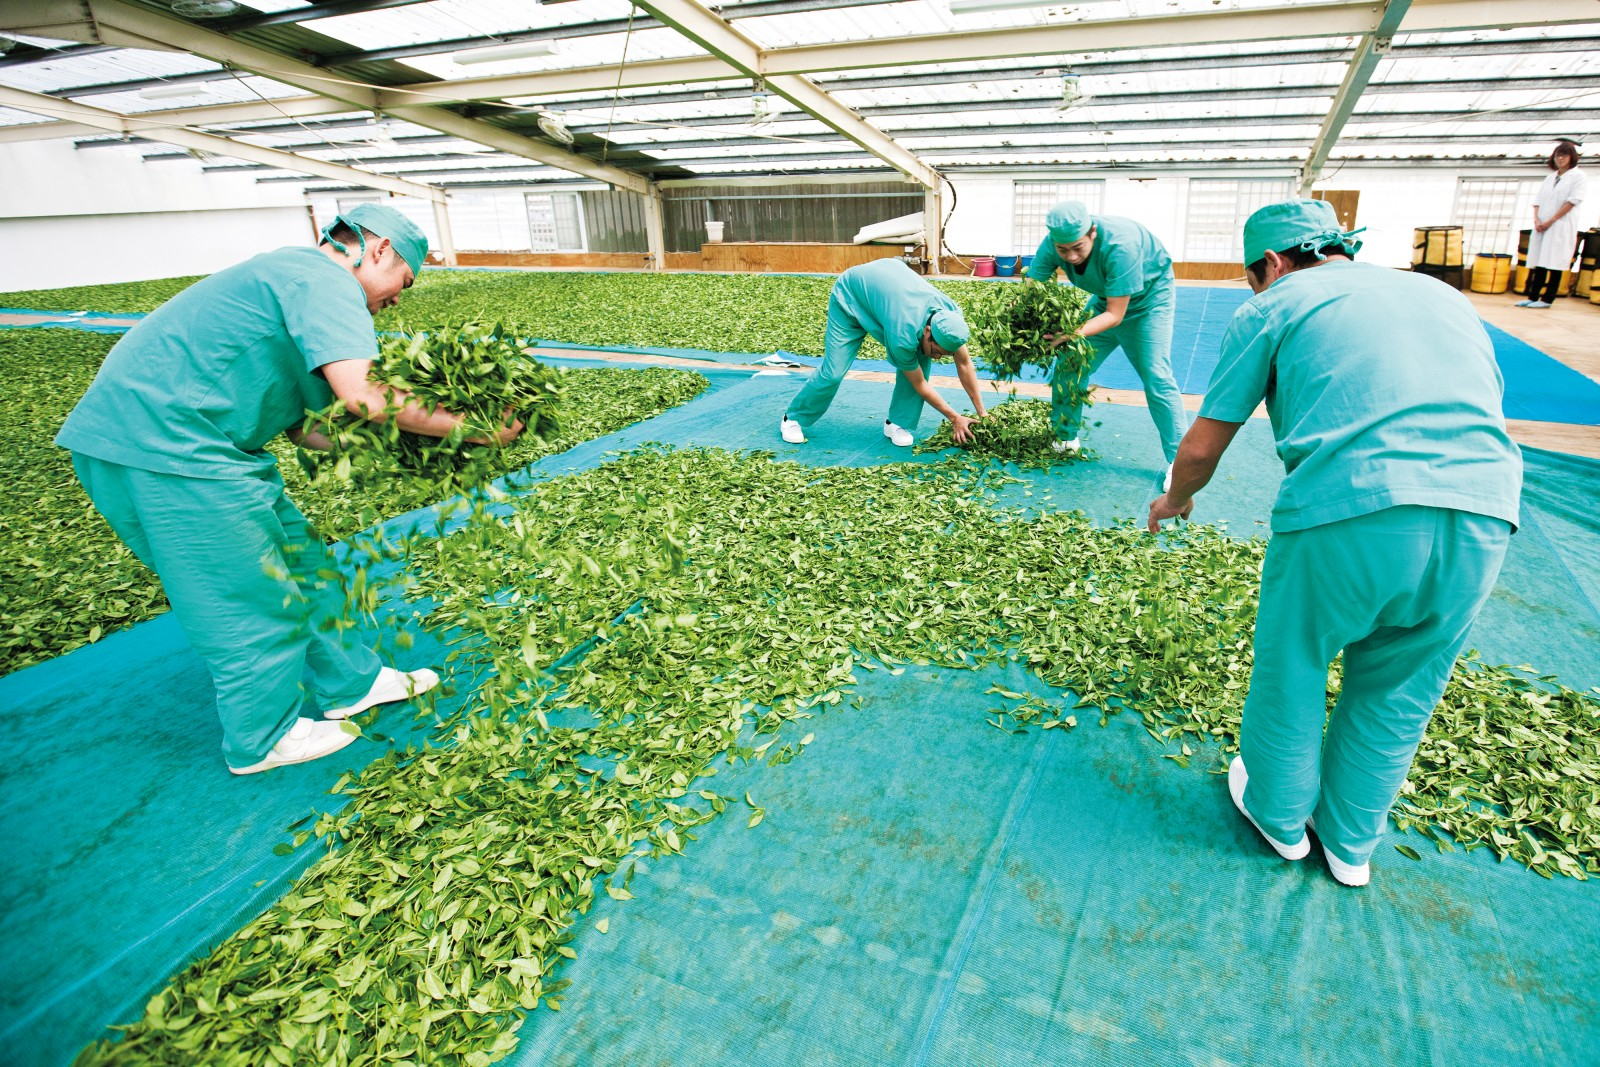 Transforming fresh tea leaves into fine tea requires a lot of manual labour. After the leaves are hand-picked, they are spread out in a thin layer in a drying room to wilt. To guarantee a uniform level of wilting, the leaves must be gathered and re-distributed up to six times before they can be rolled and packed for distribution. The hospital-style scrubs are part of a hygiene programme that has allowed local manufacturer Zealong to become the world's first ISO-certified producer.